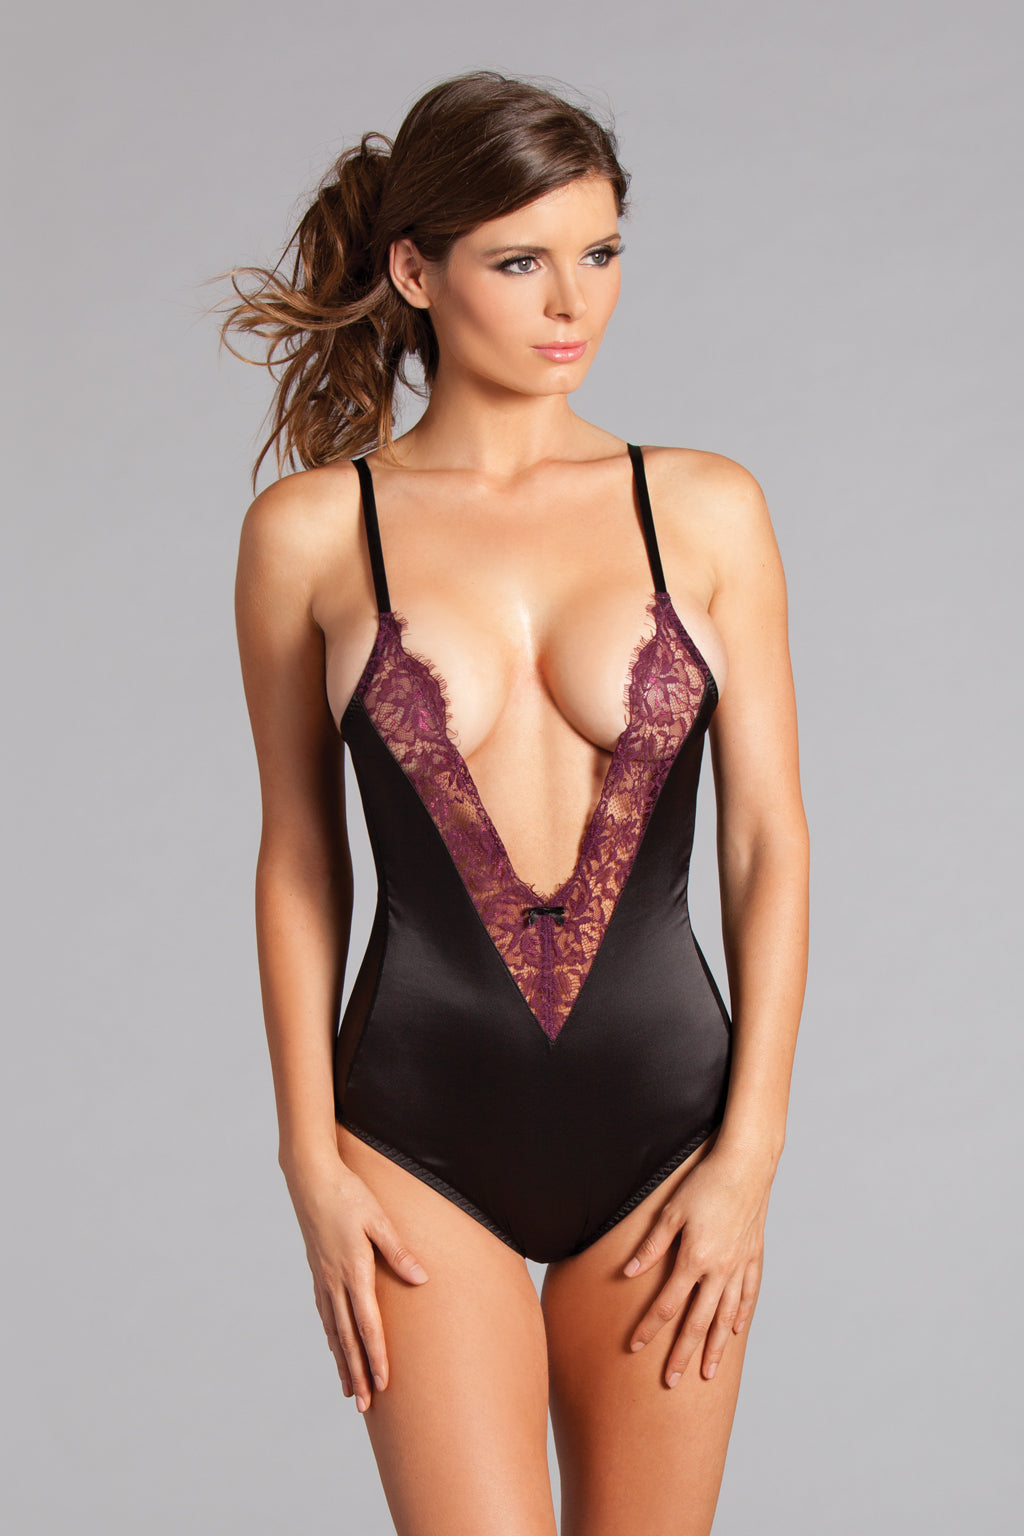 LALA TRENDS Be Wicked Clair Teddy Lingerie $52.95